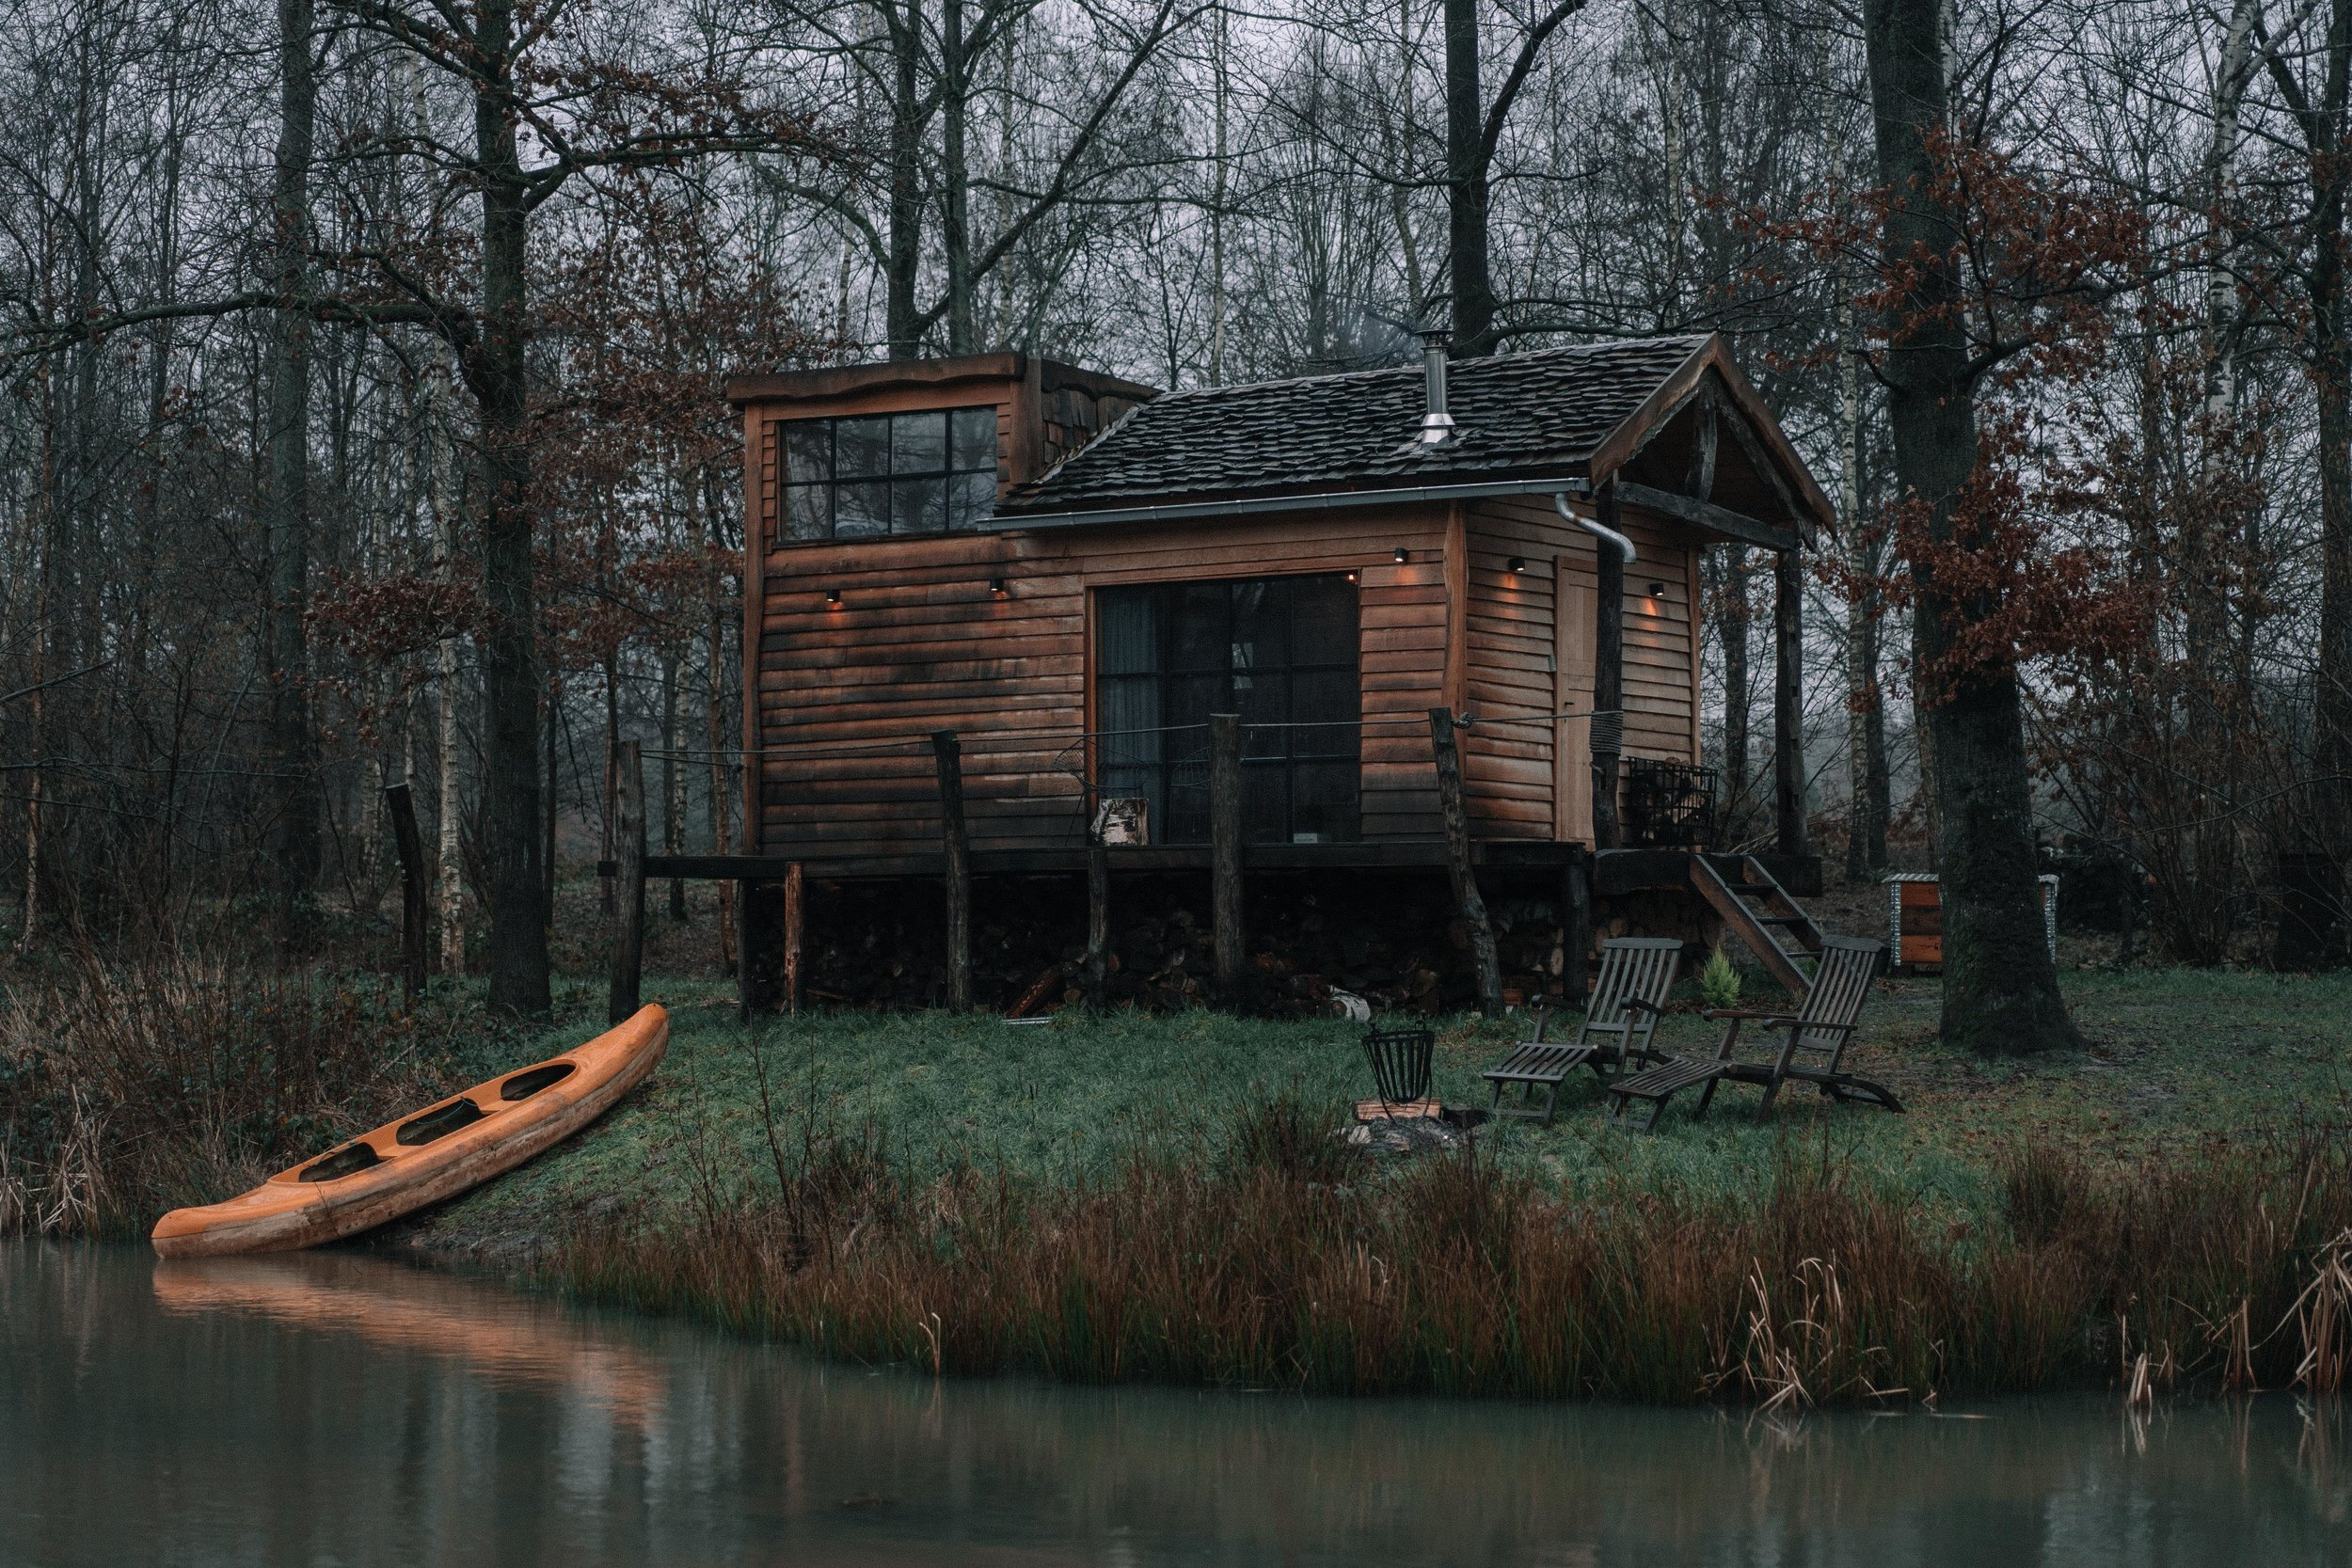 The Forest - A little Tiny House lost in the woods, 35 minutes from Brussels. You definitely have to visit this place.